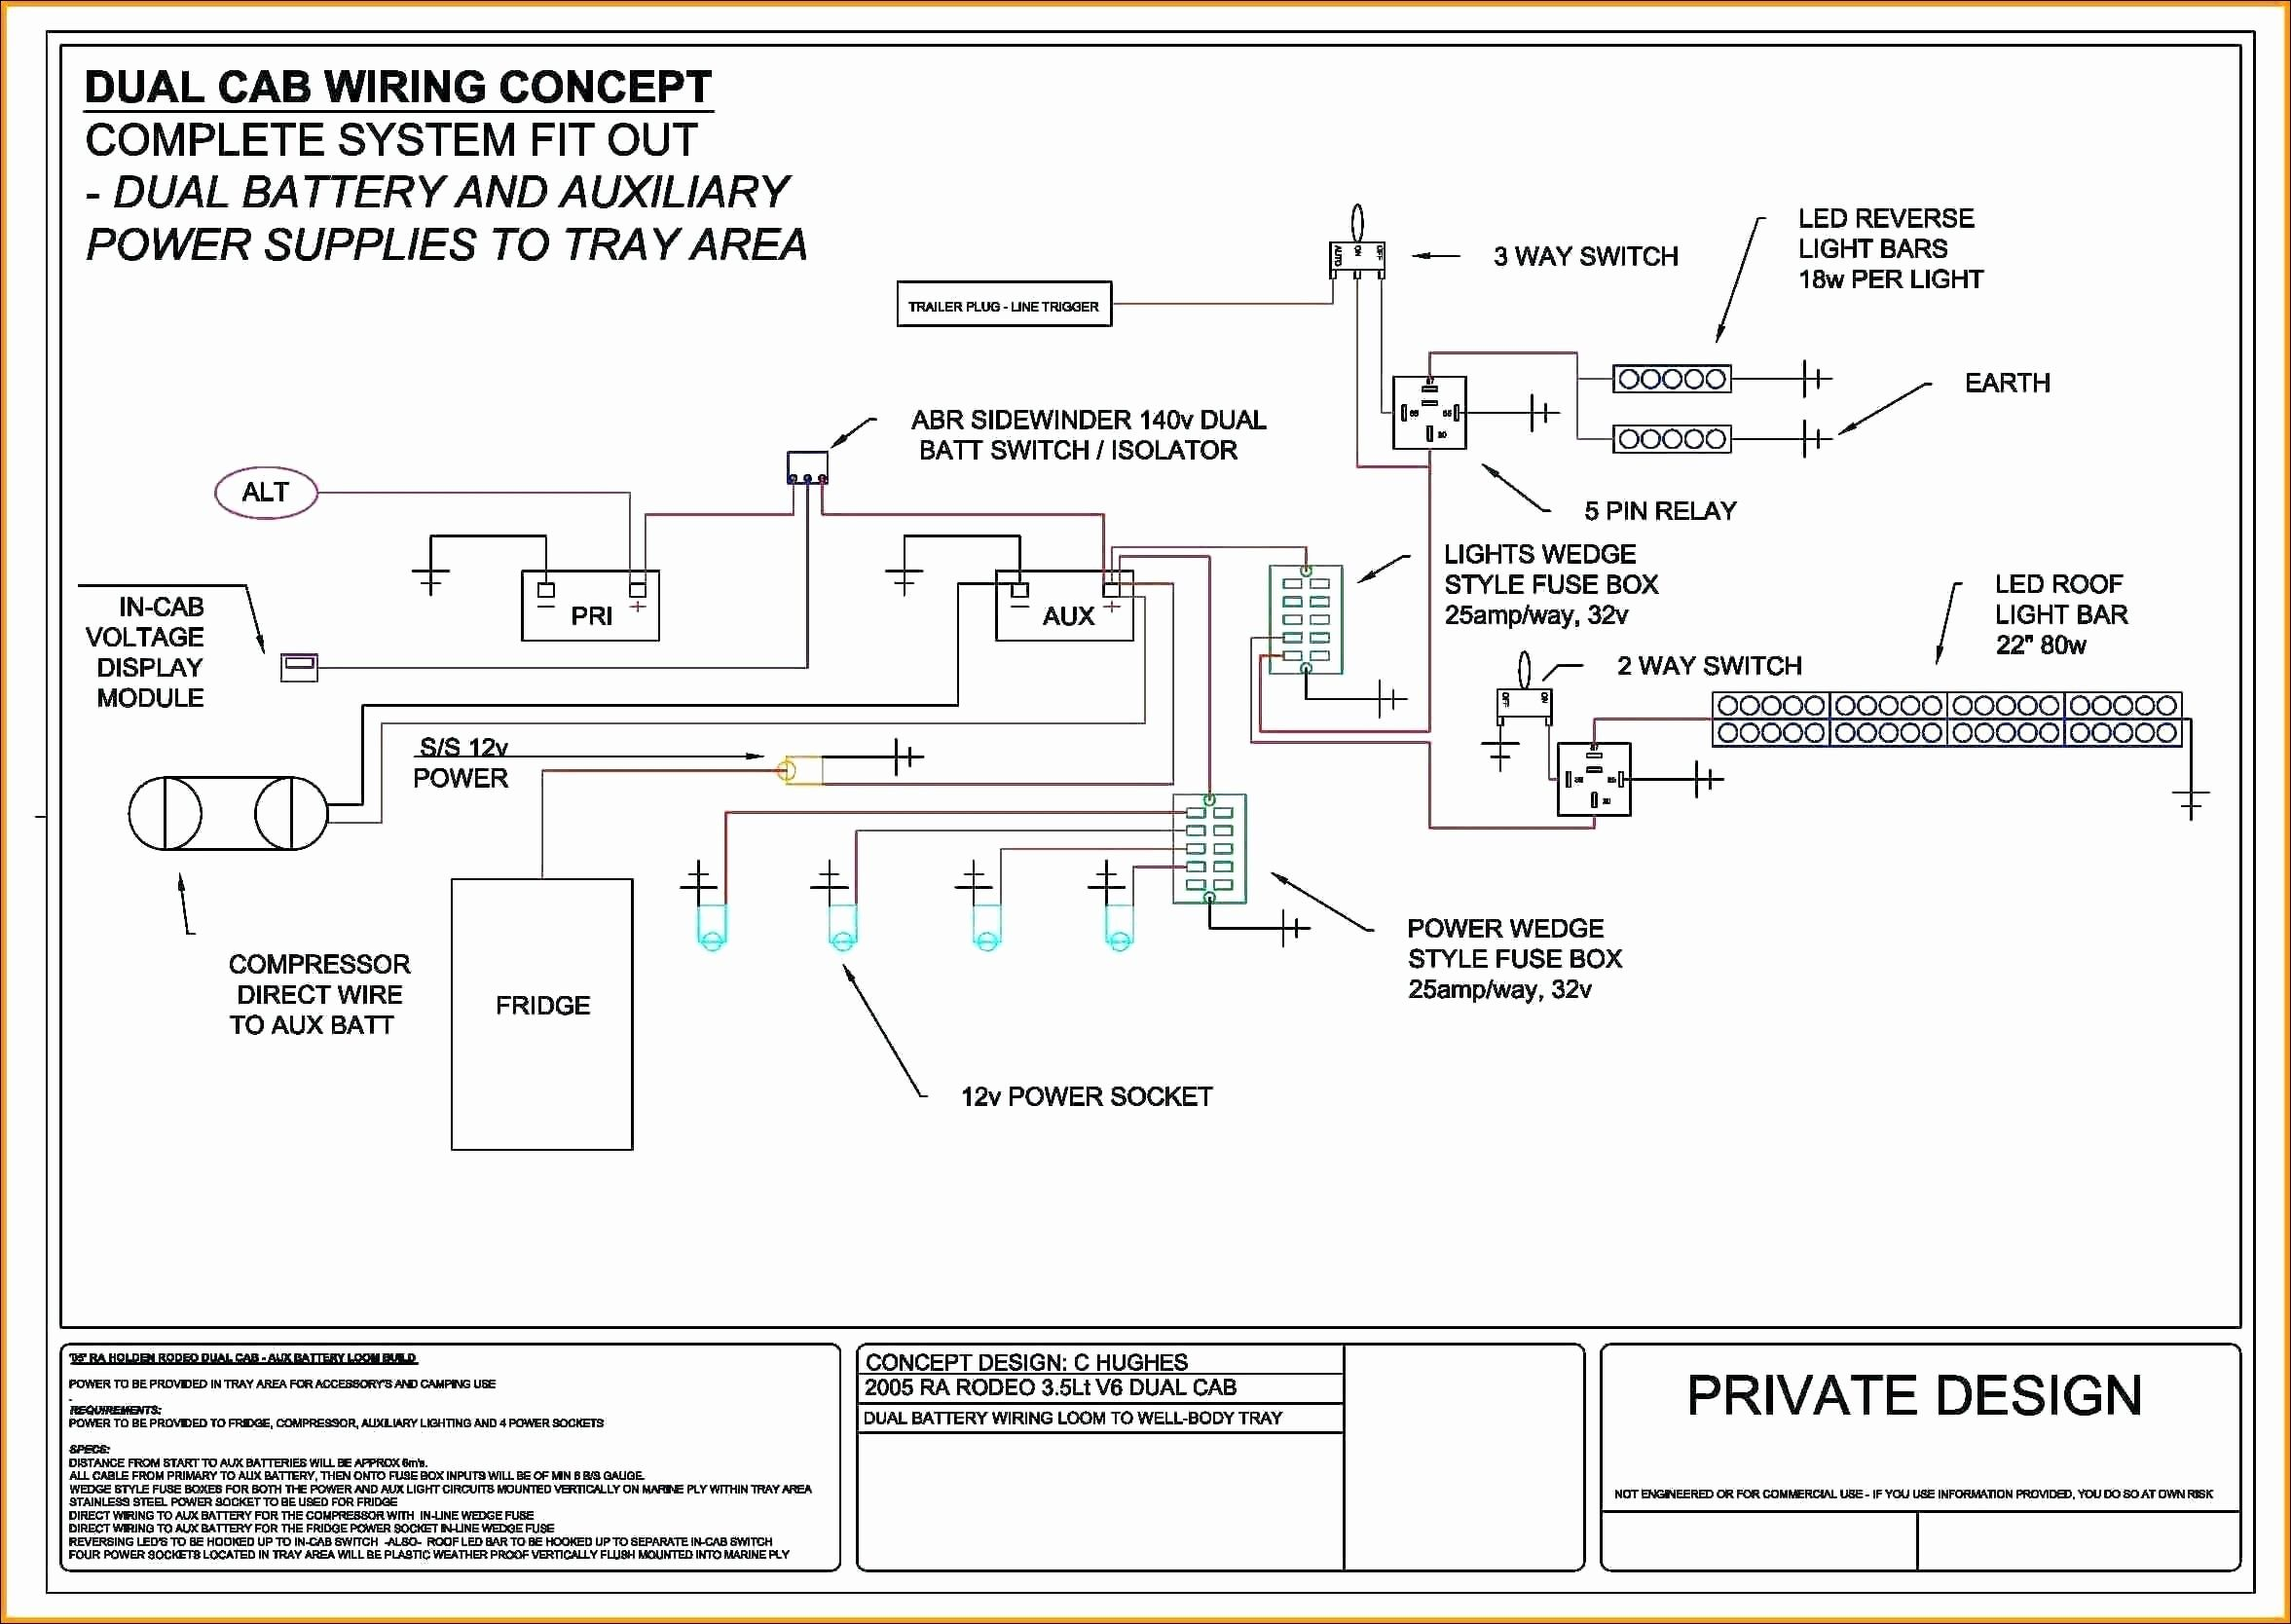 Unique Wiring Diagram For 12v Auto Relay With Images Diagram Compressor